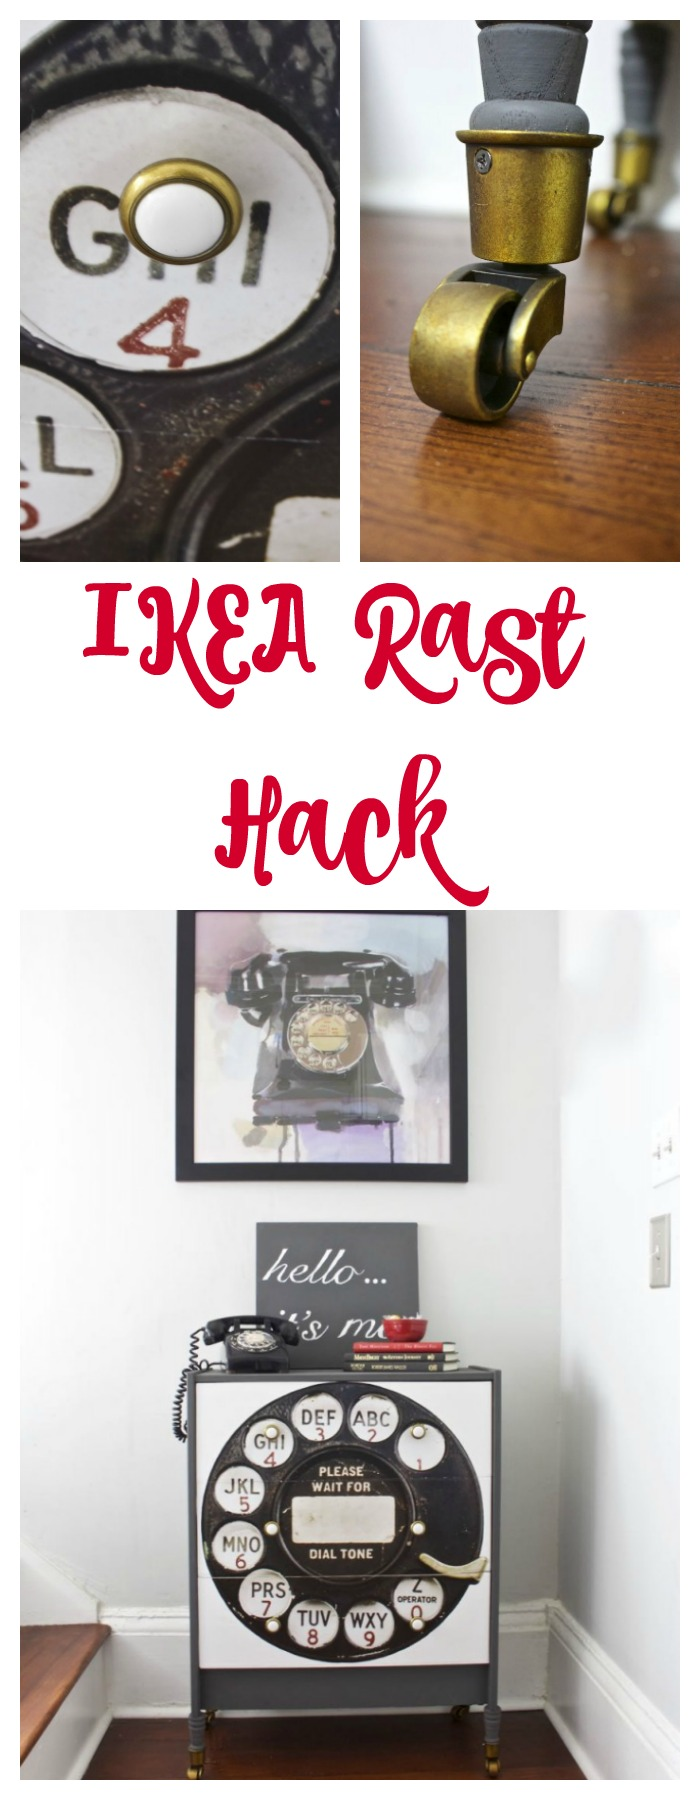 Using paint, hardware, and a poster, we were able to create a unique IKEA Rast Hack. Such a fun DIY project.